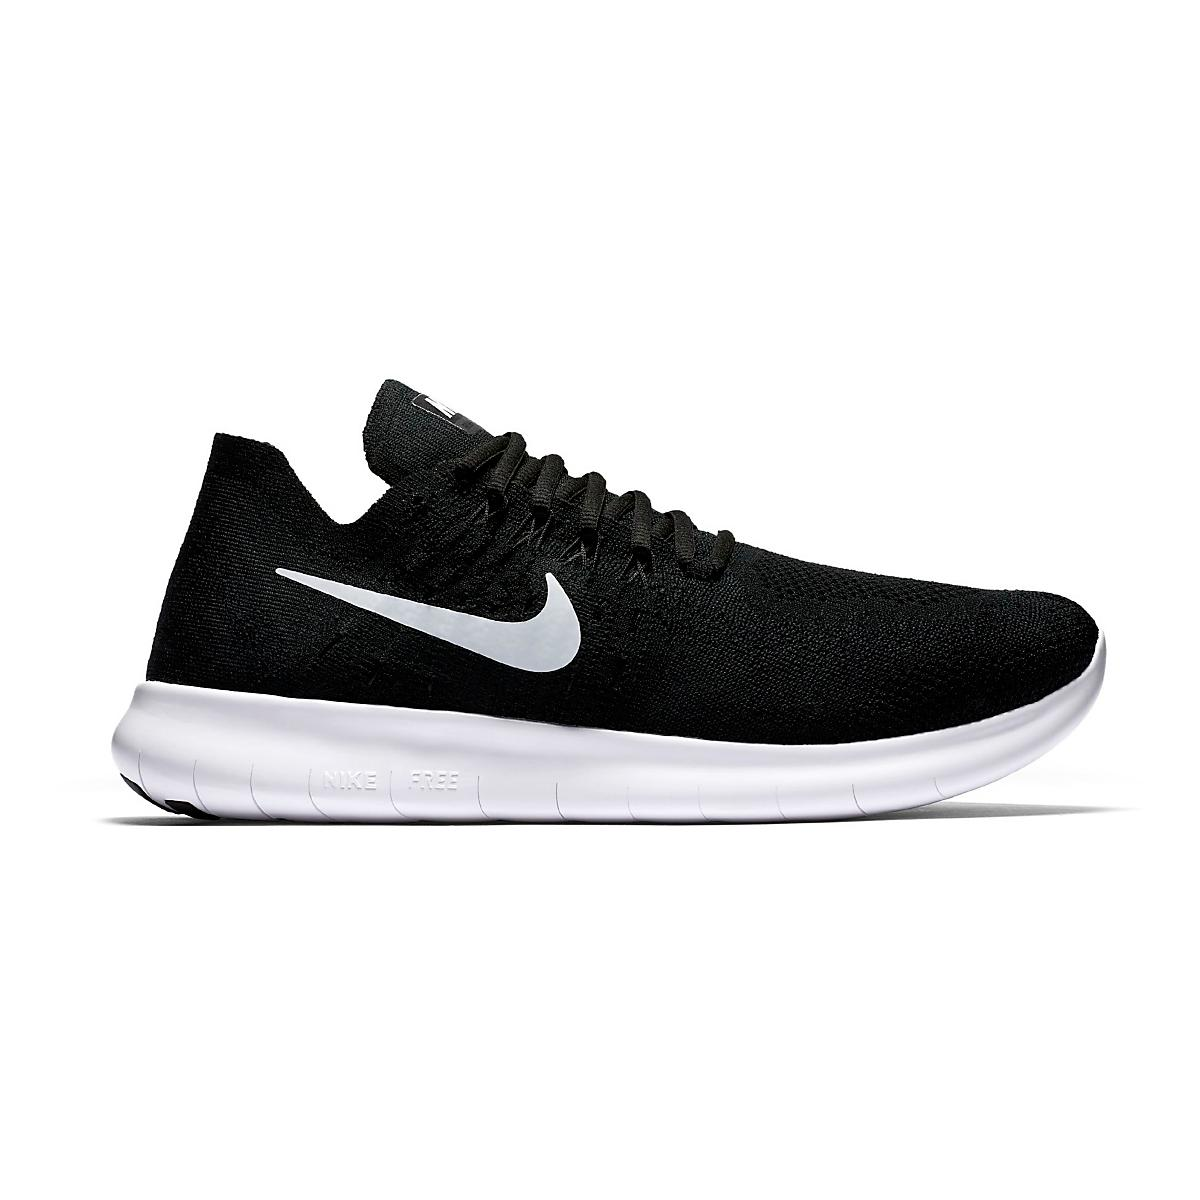 64990e5f1f2d Men s Nike Free RN Flyknit at Road Runner Sports